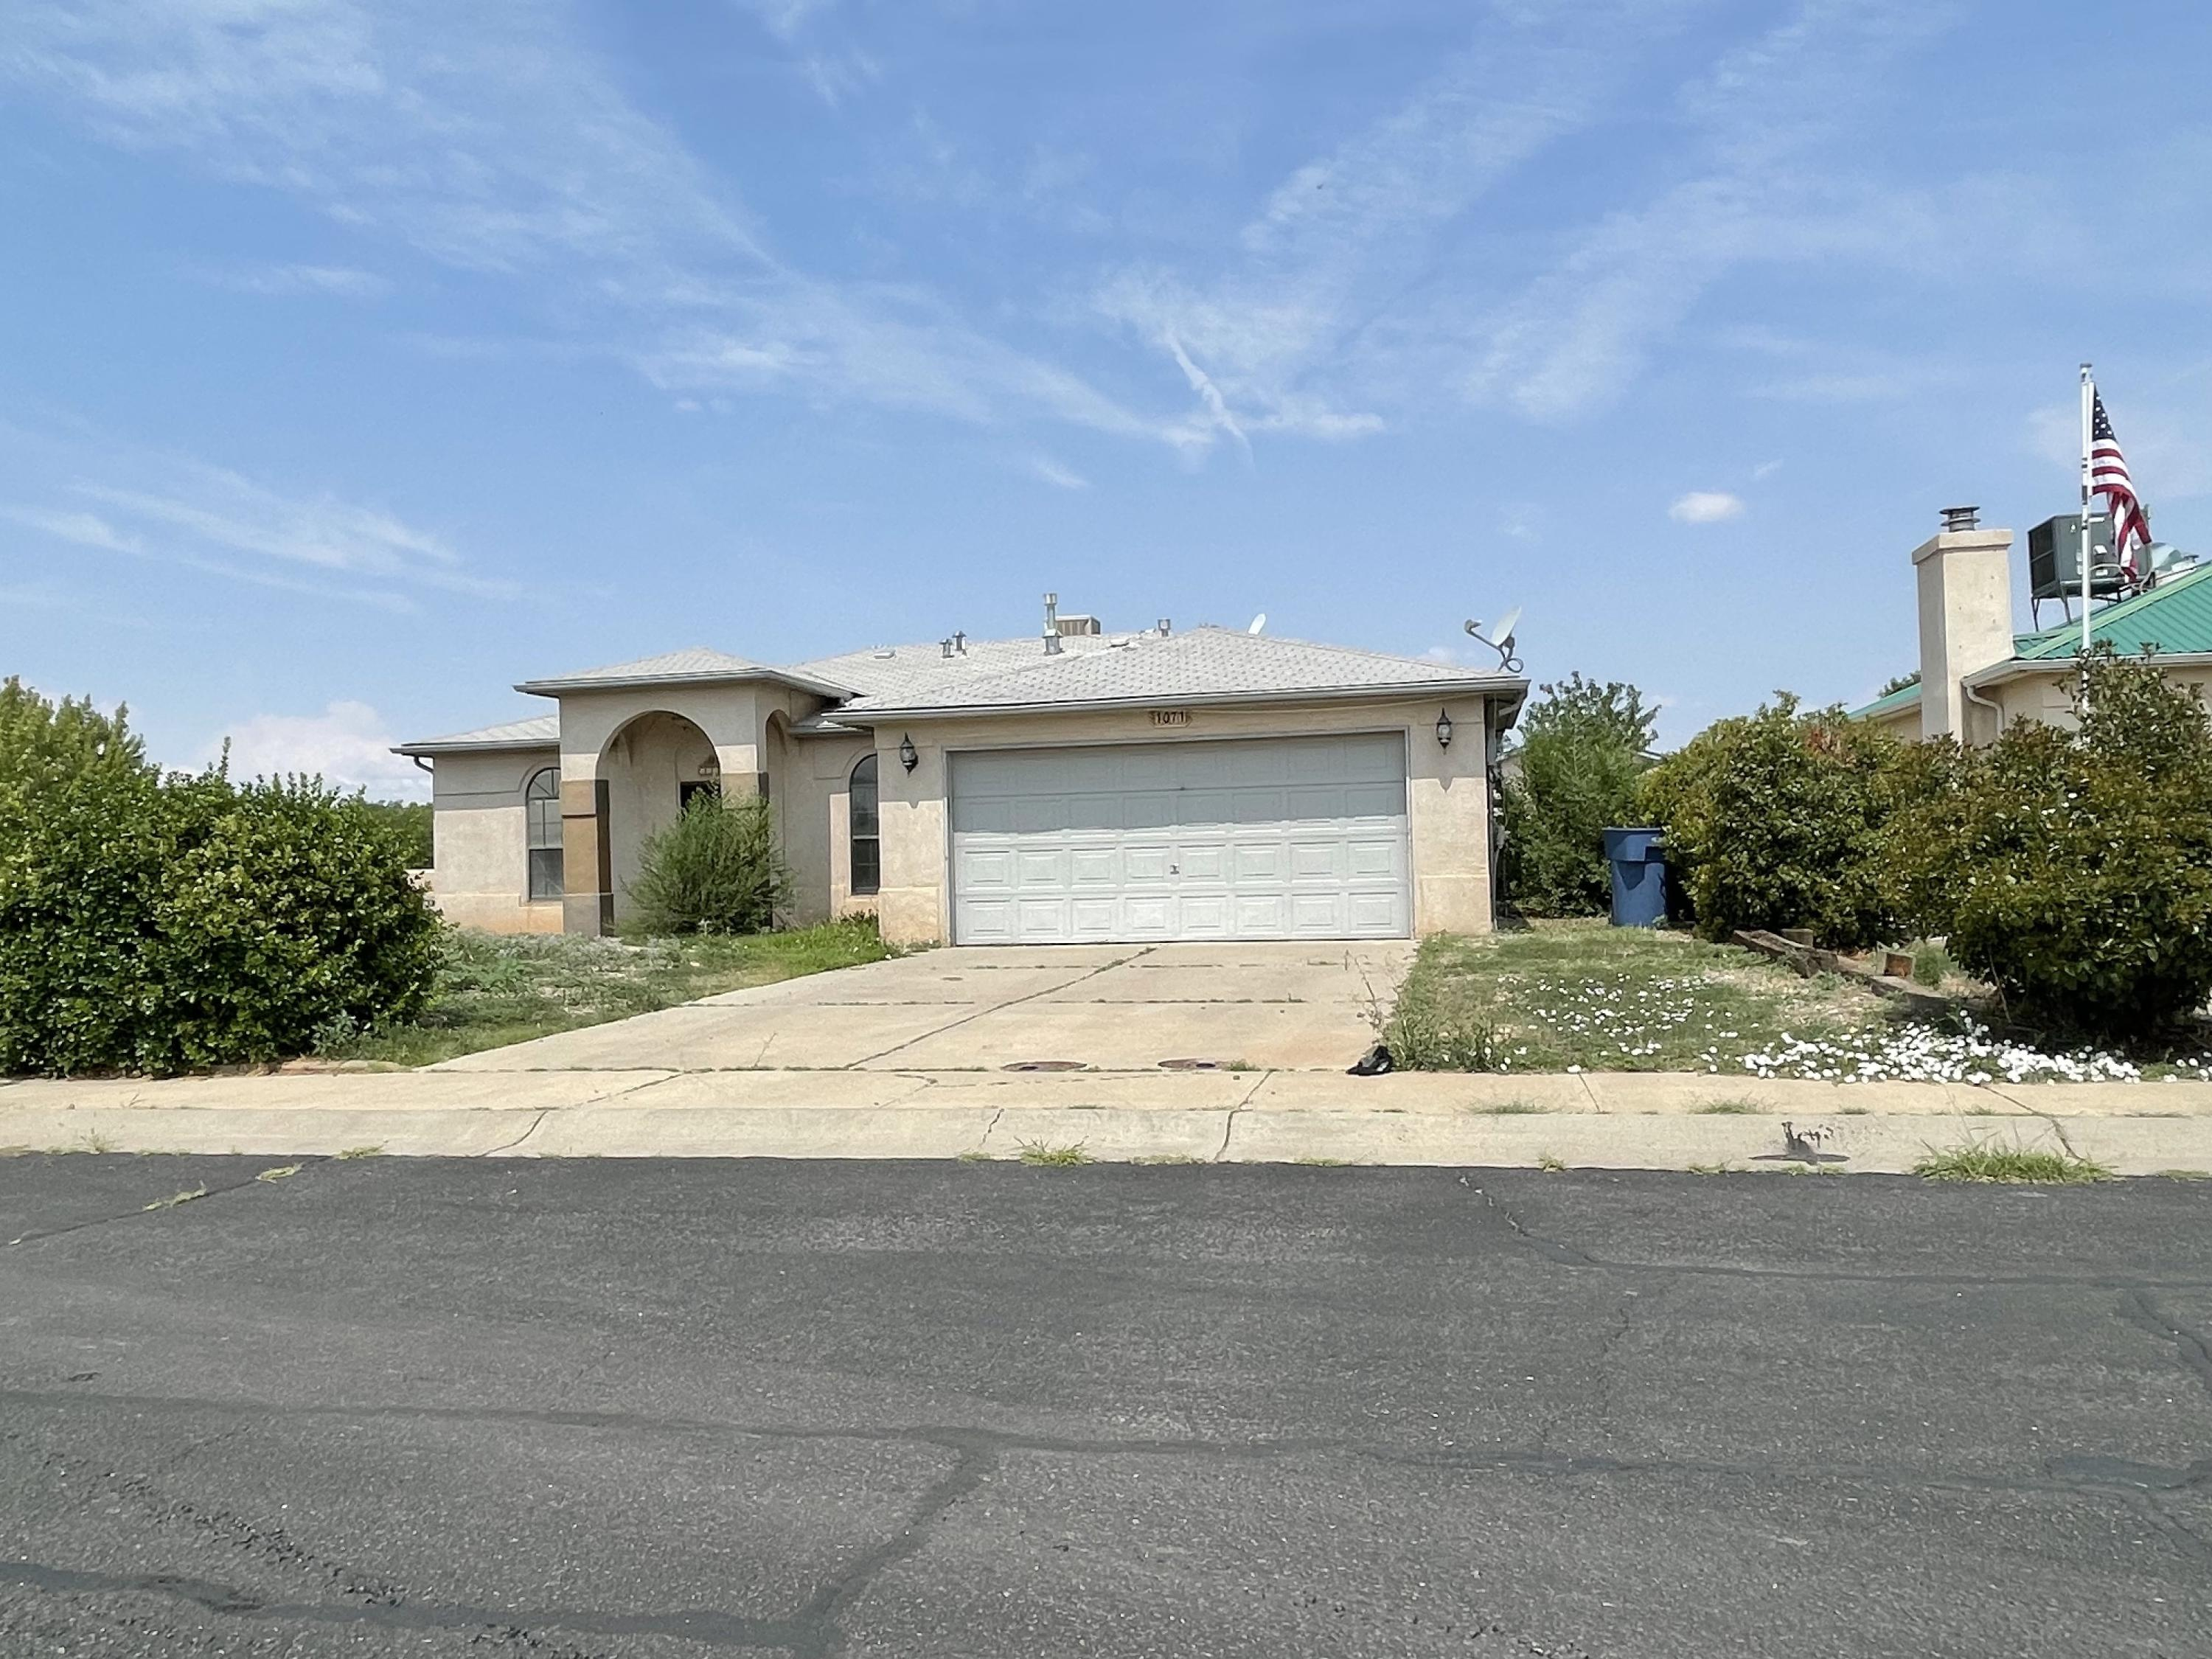 'Under Contract Taking Backup Offers'. Great location in the heart of Los Lunas!!!  This nice size three bedroom, two bathroom home includes a nice size living room, an open dining room that leads to the backyard, a country kitchen with lots of cabinets, a breakfast bar, a free standing gas stove and dishwasher, the laundry service room is located just off the kitchen, and located on a nice corner lot with a large fenced in backyard.  Call today for details.